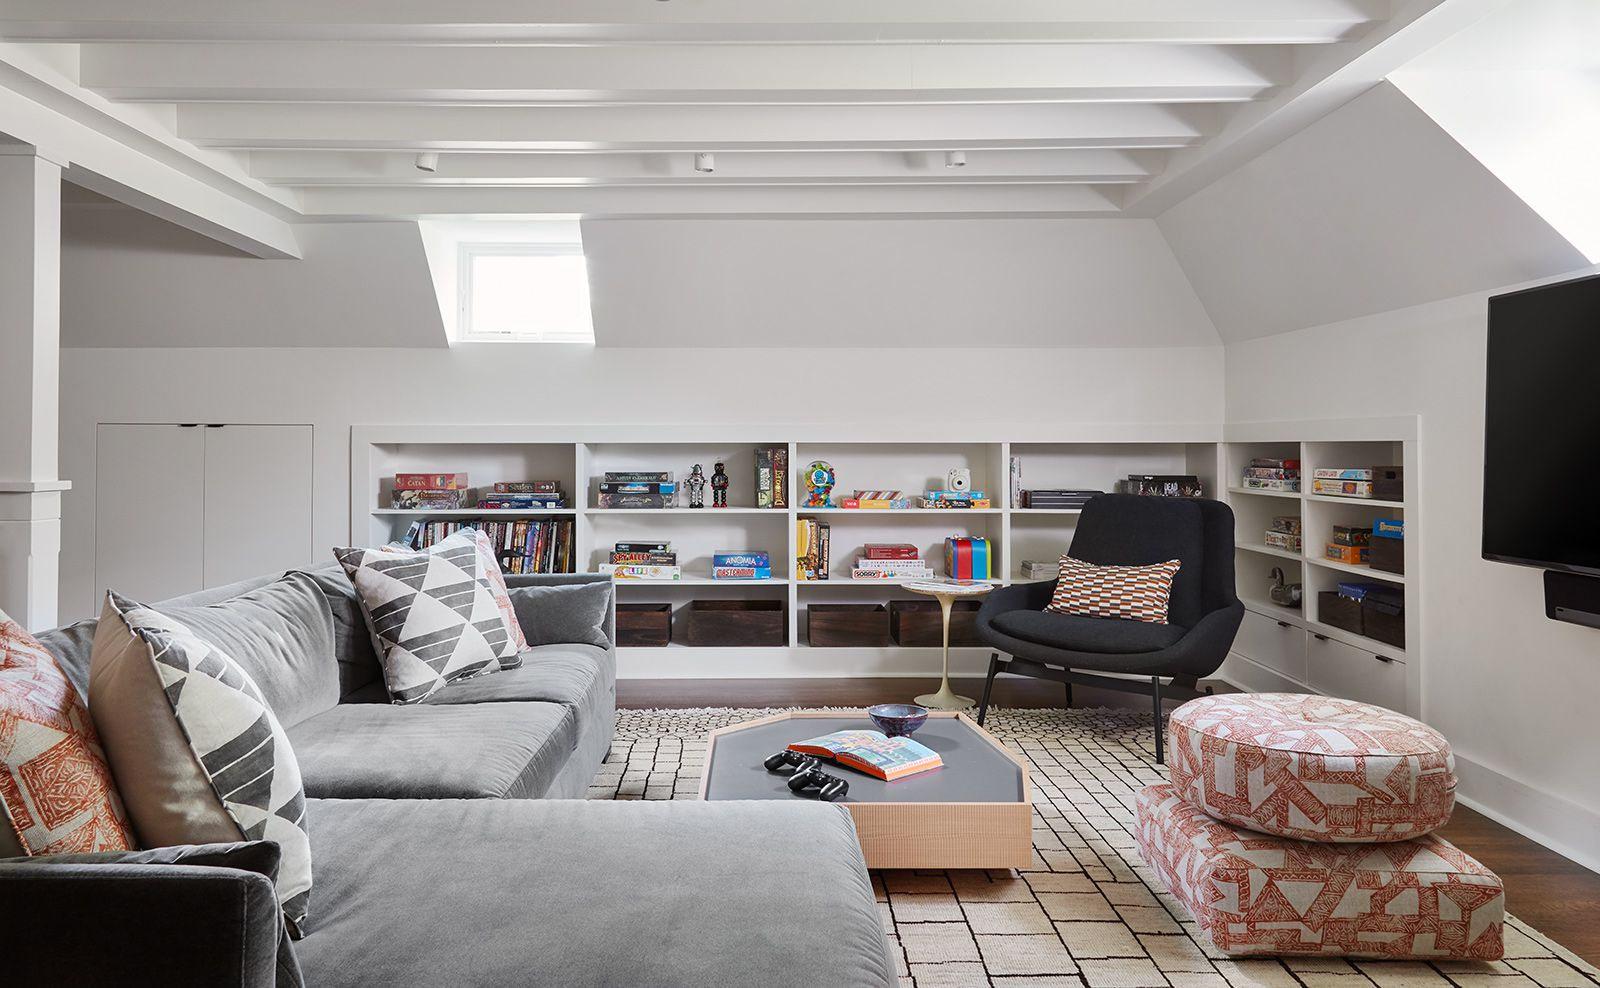 40 Sectional Sofas For Every Style Of Living Room Decor - Living